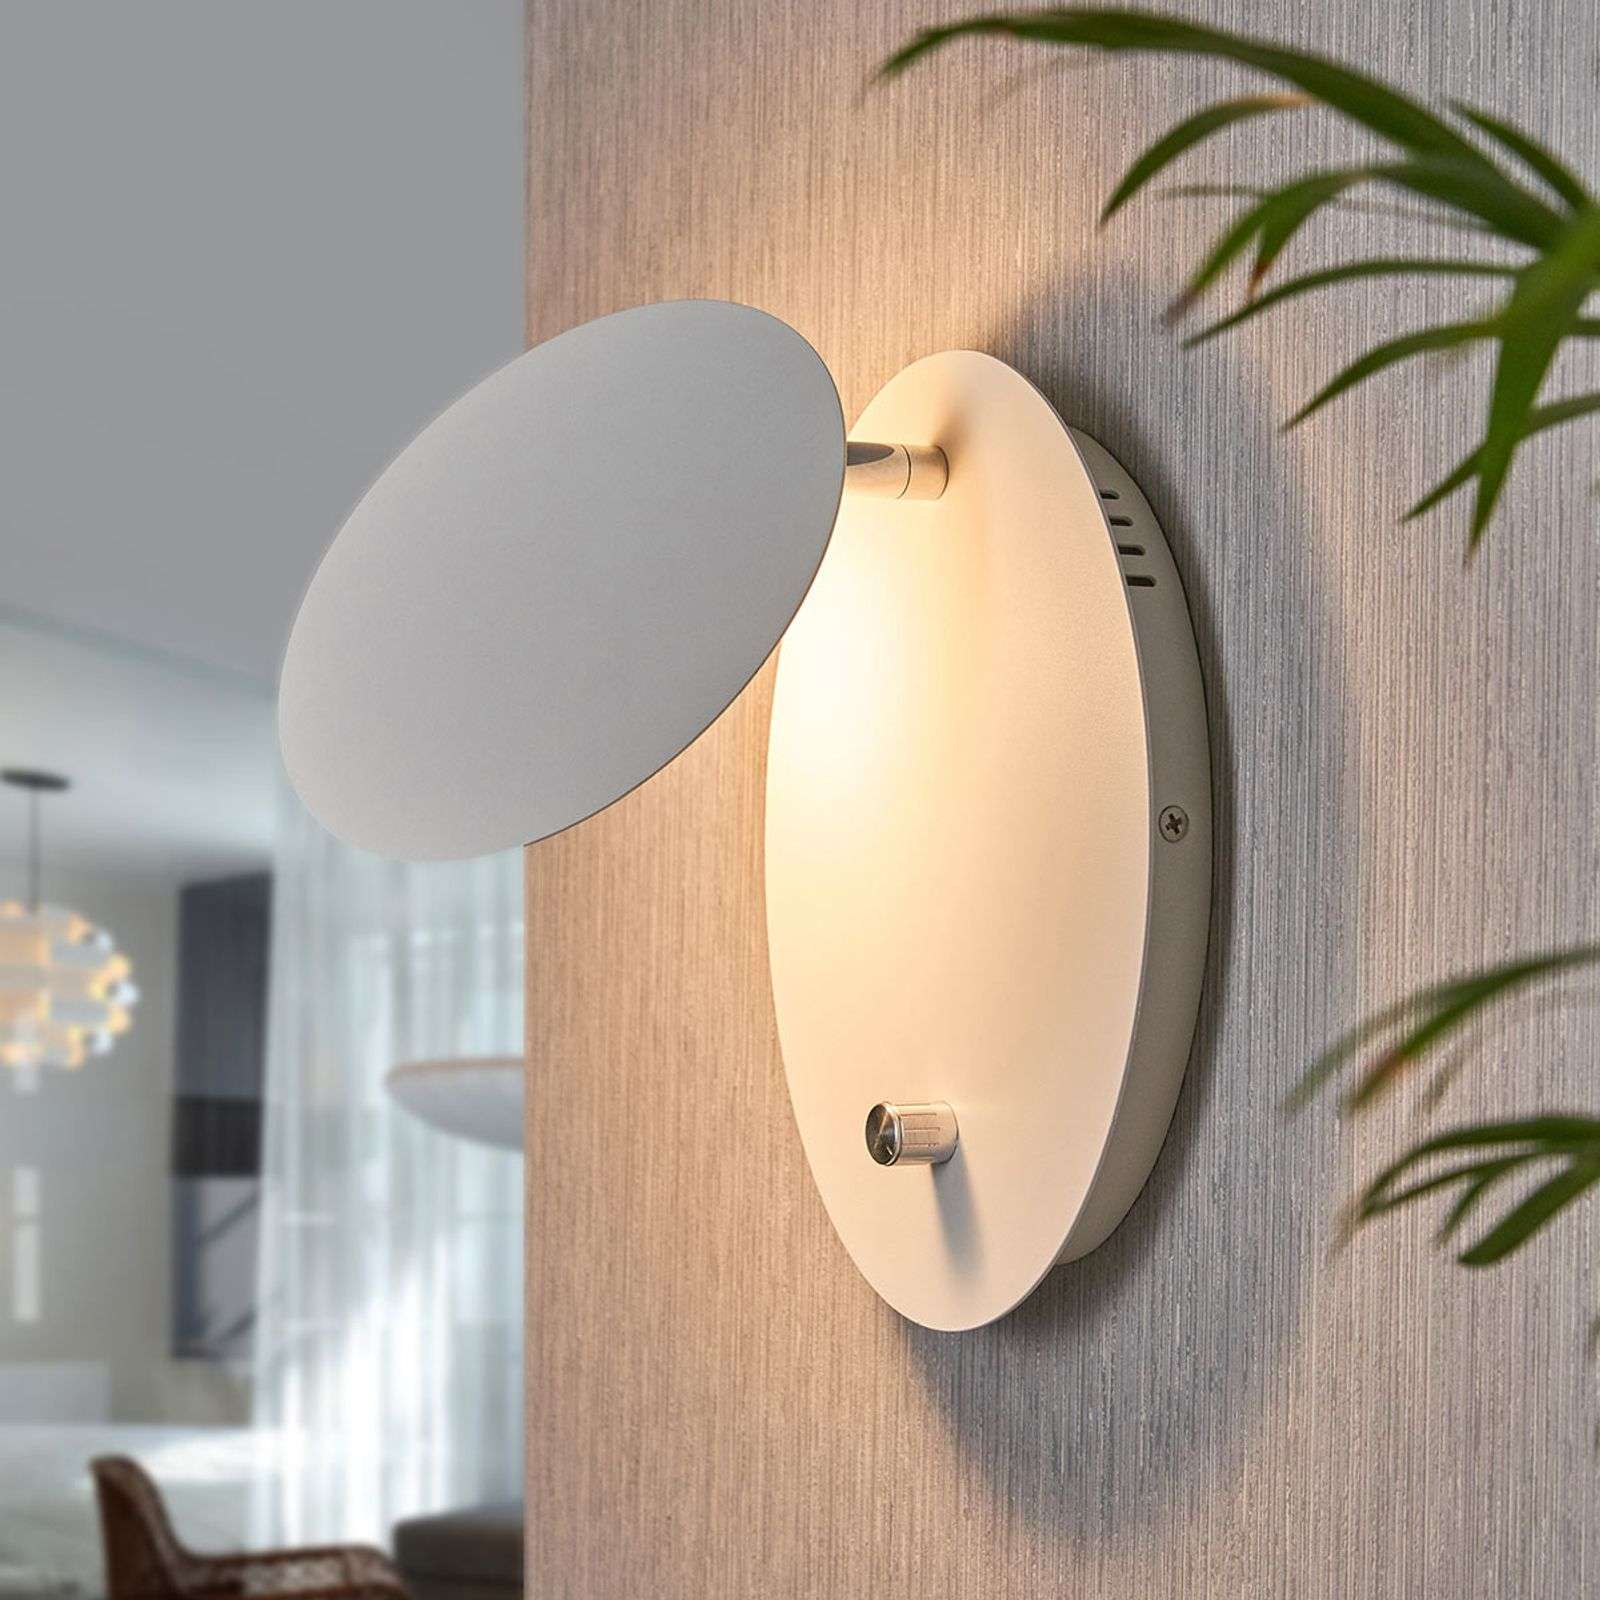 Applique a LED Chesta dimmerabile in continuo